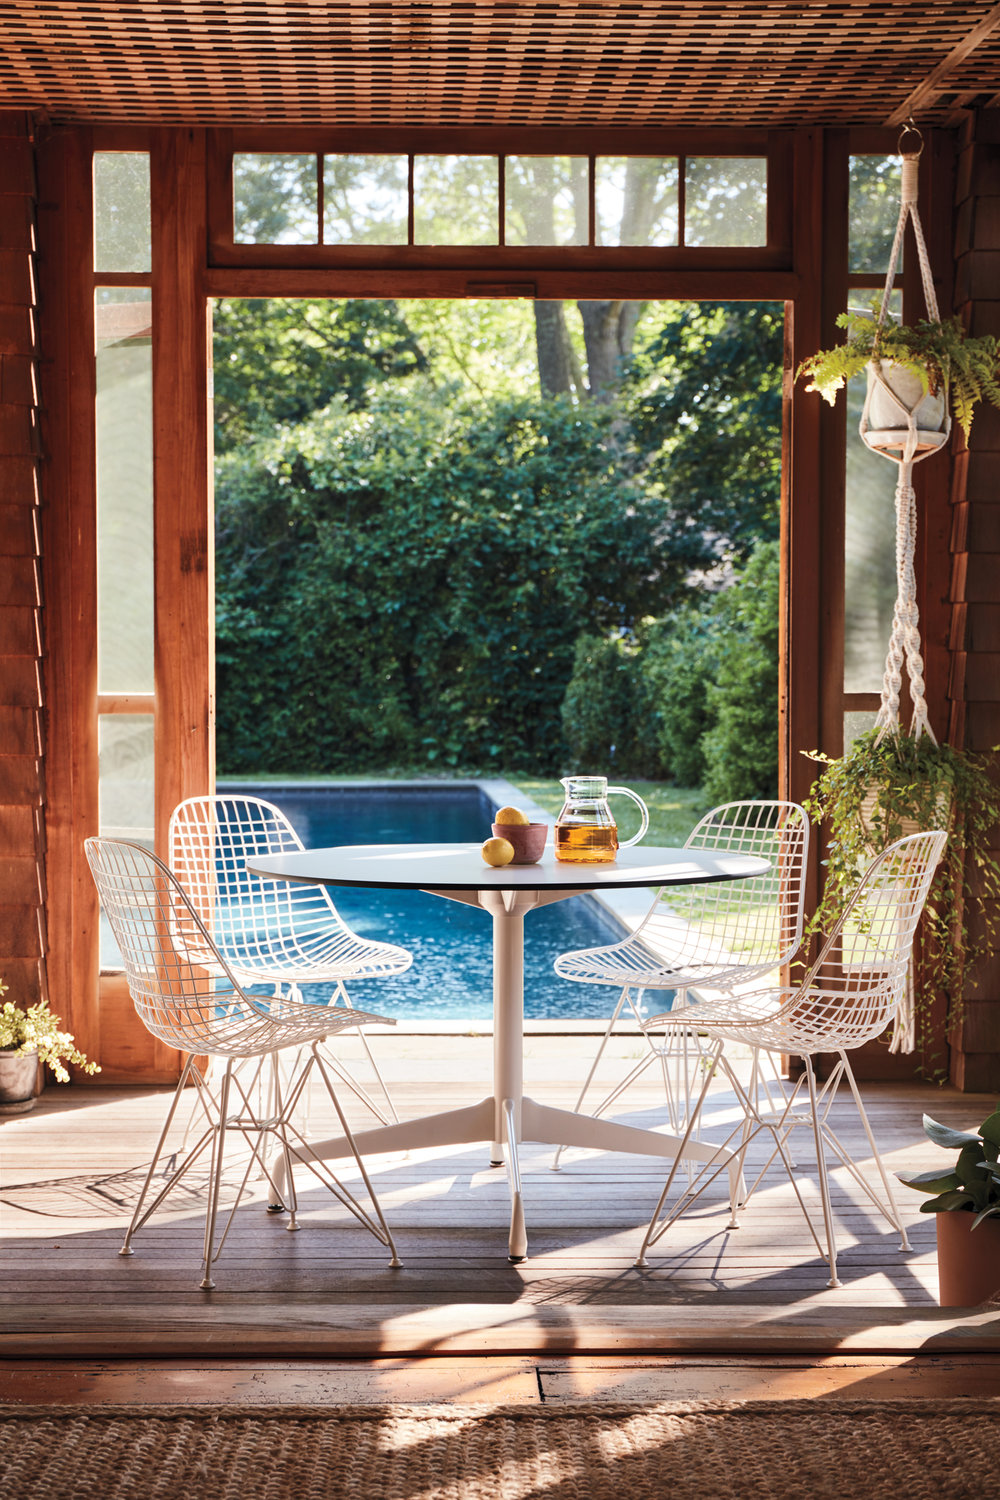 HM_Bellport_09_Outdoor_Eames_023_Hero.jpg